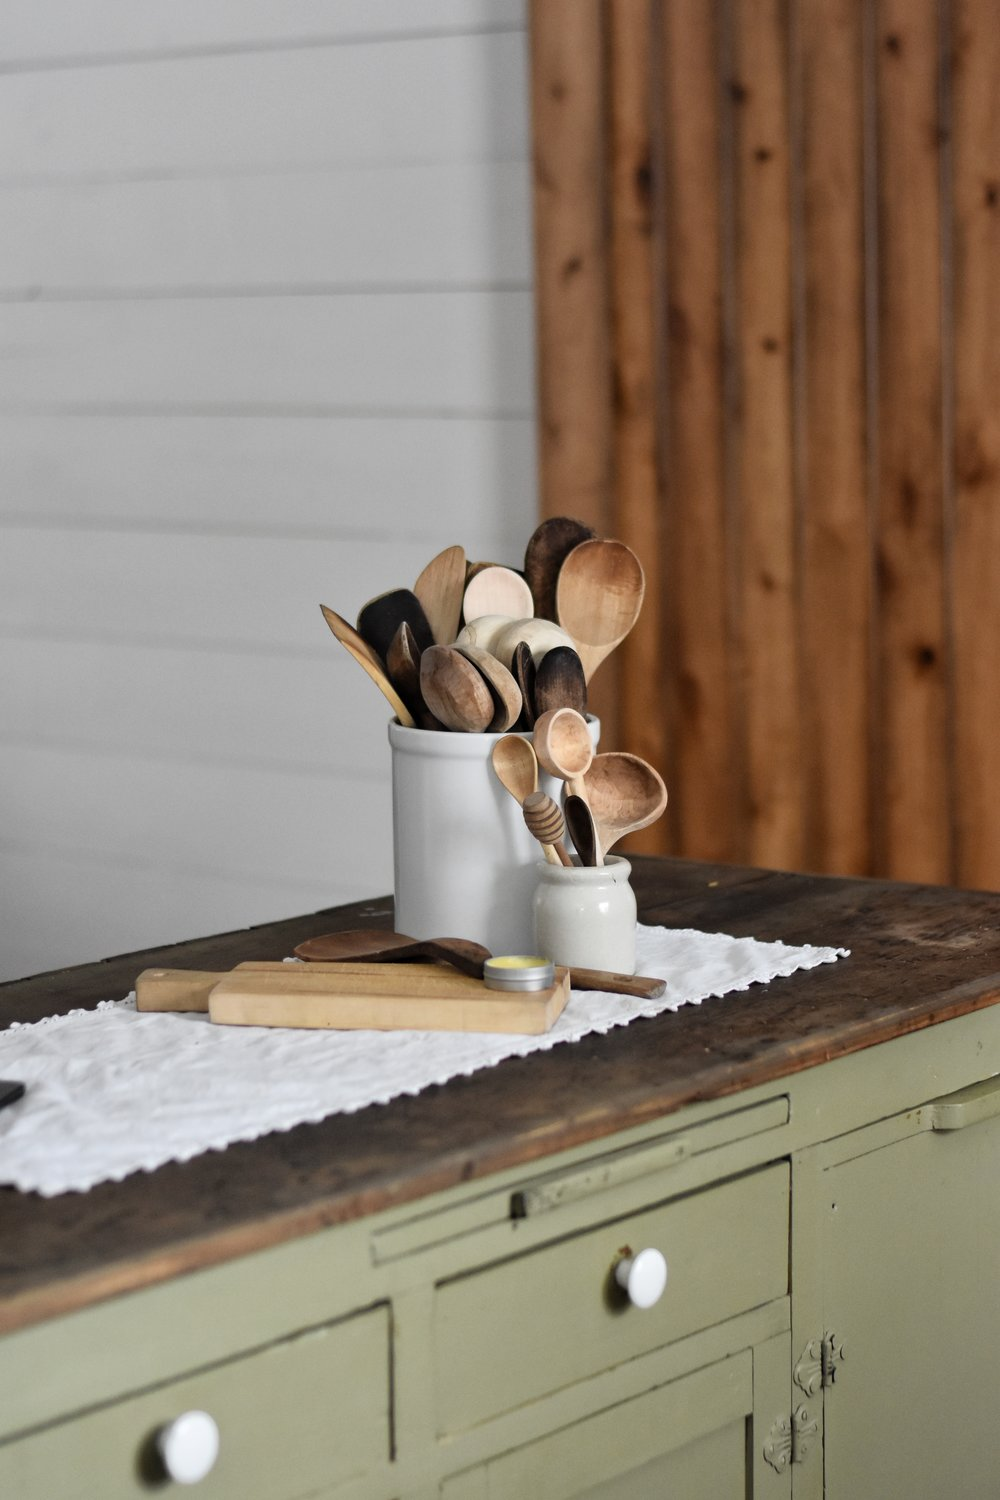 how to properly care for wooden utensils